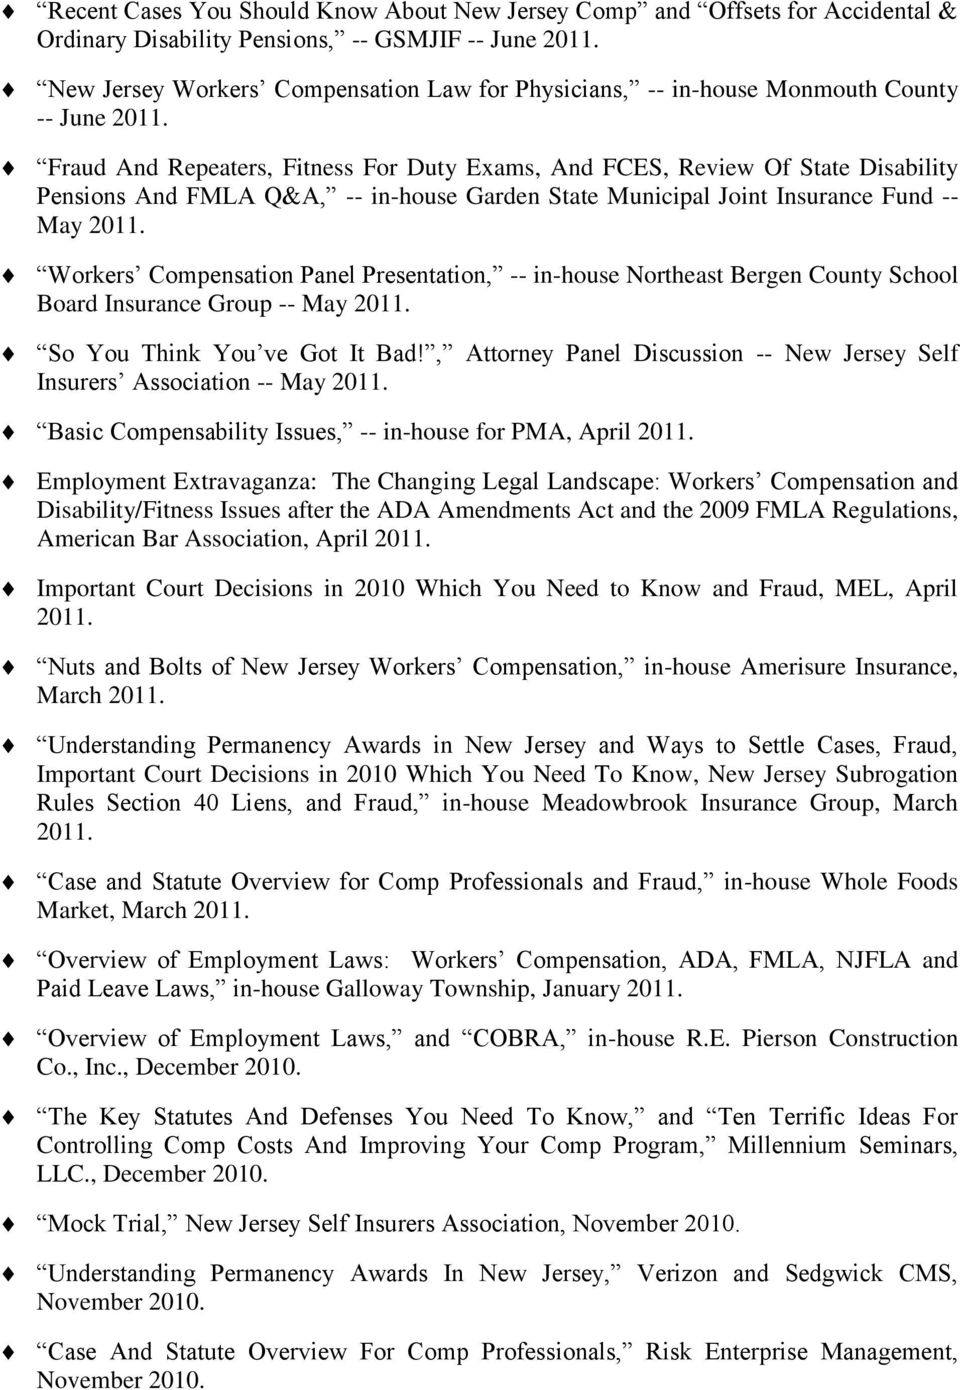 Fraud And Repeaters, Fitness For Duty Exams, And FCES, Review Of State Disability Pensions And FMLA Q&A, -- in-house Garden State Municipal Joint Insurance Fund -- May 2011.